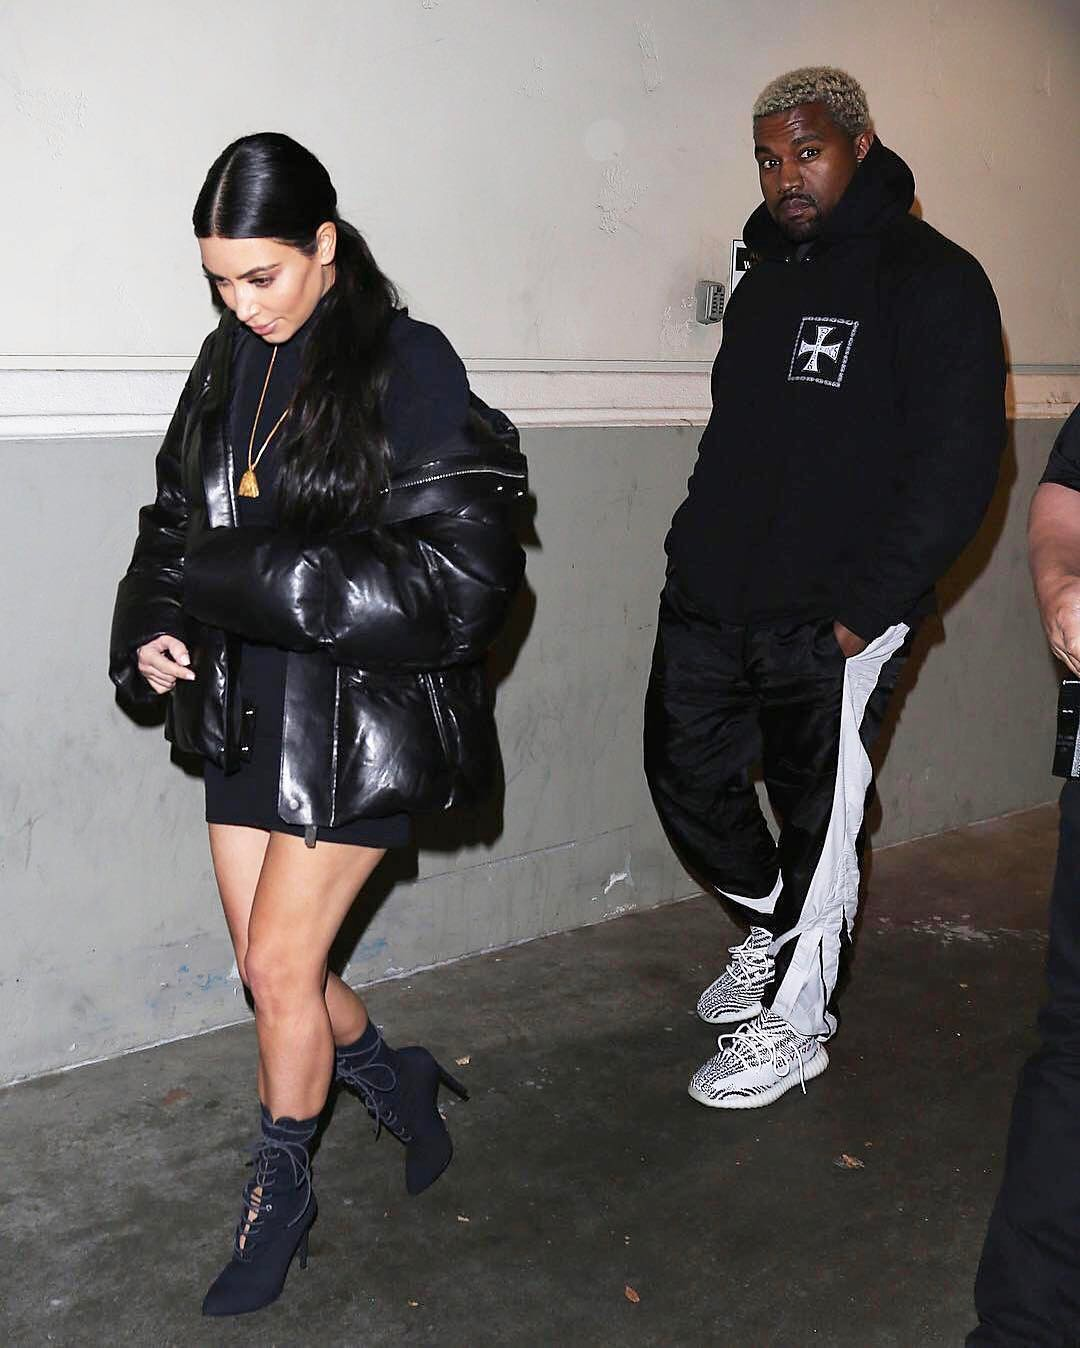 SPOTTED: Kanye West Seen With Kim Kardashian In Enfants Riches Deprime and Yeezy Boost 350 V2s